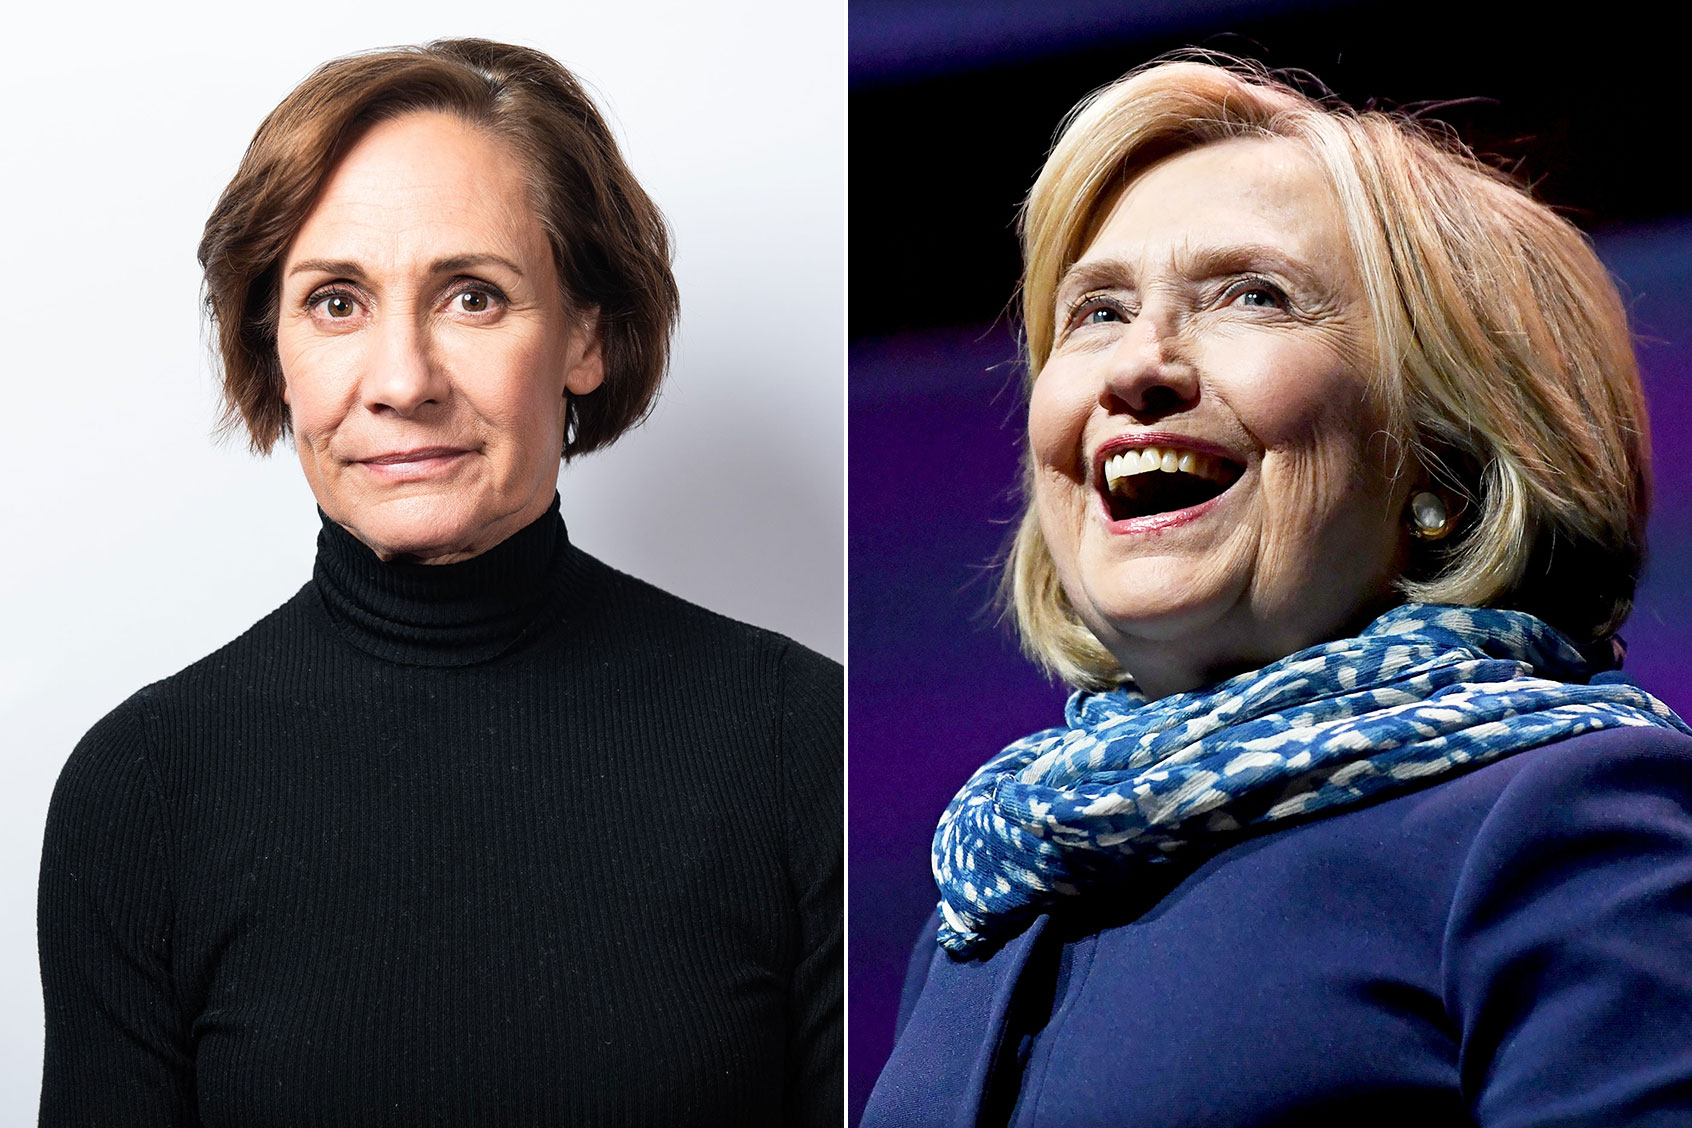 Hillary and Clinton' Broadway: Laurie Metcalf to Play Hillary